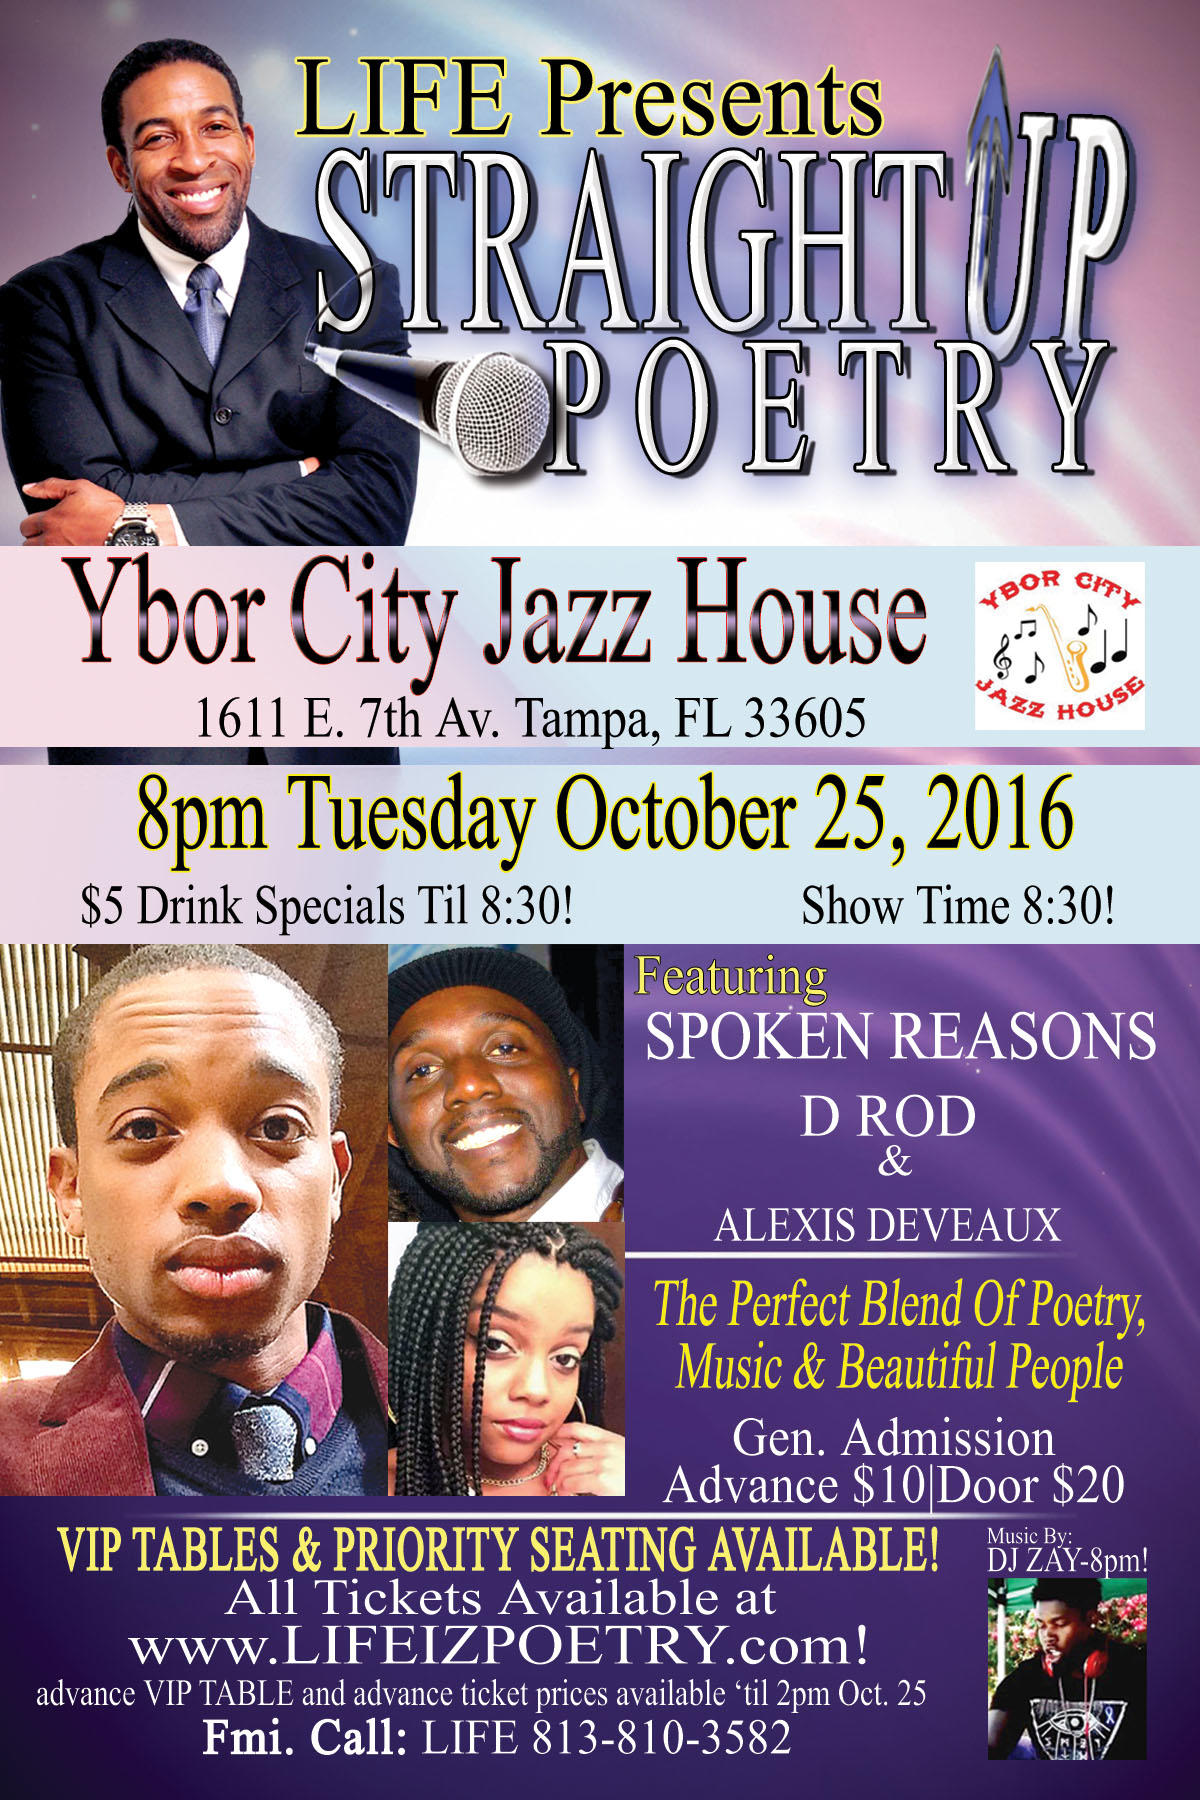 LIFE Presents Straight UP Poetry at the Ybor City Jazz House!